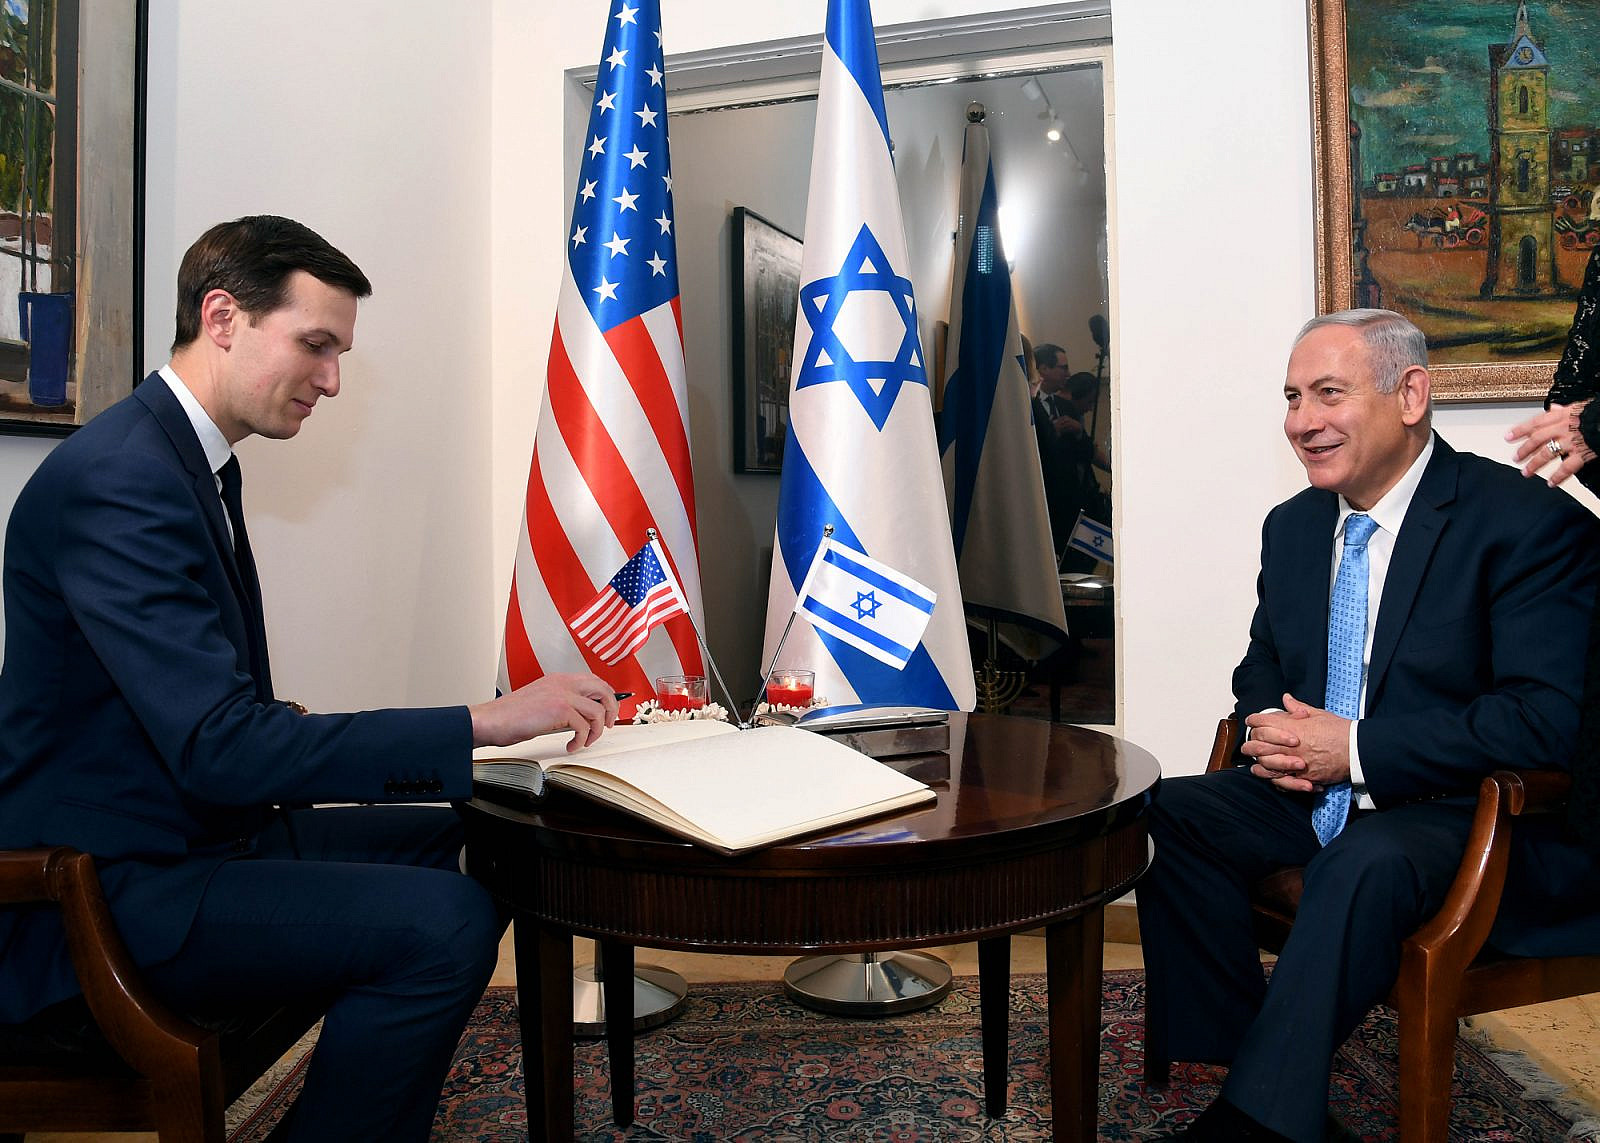 Jared Kushner does not see the brutal occupation I helped carry out